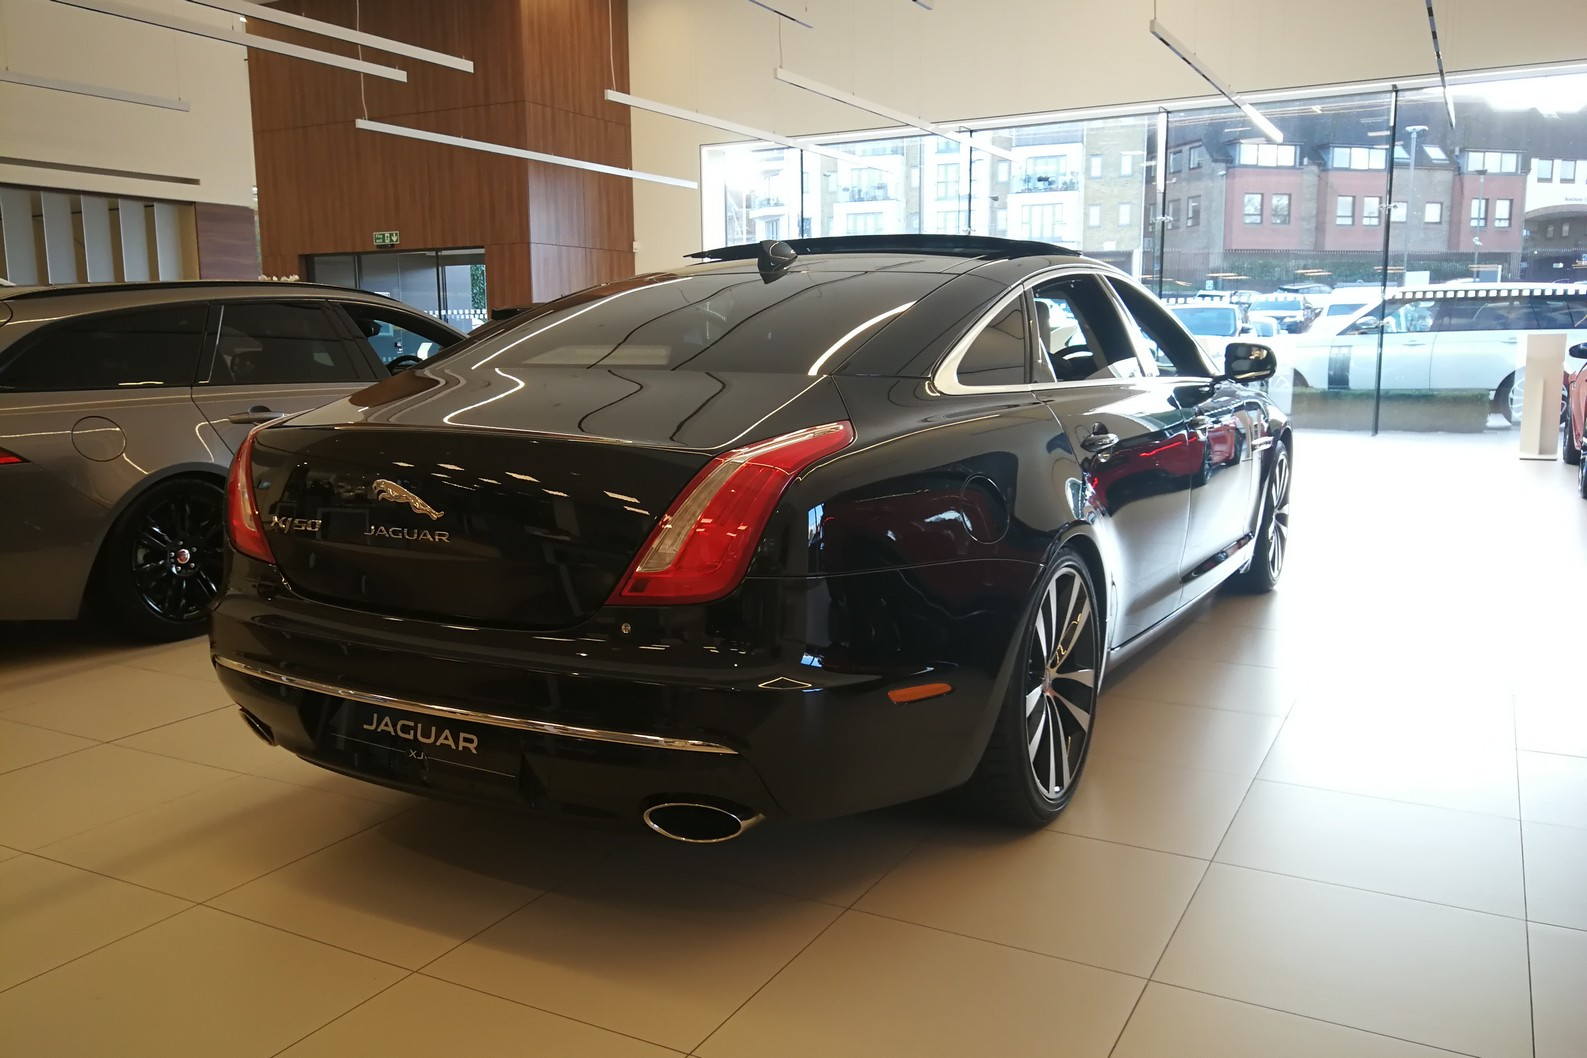 Jaguar XJ 3.0d V6 XJ50 LWB - Delivery Mileage - Surround Camera - Heated and cooled S image 5